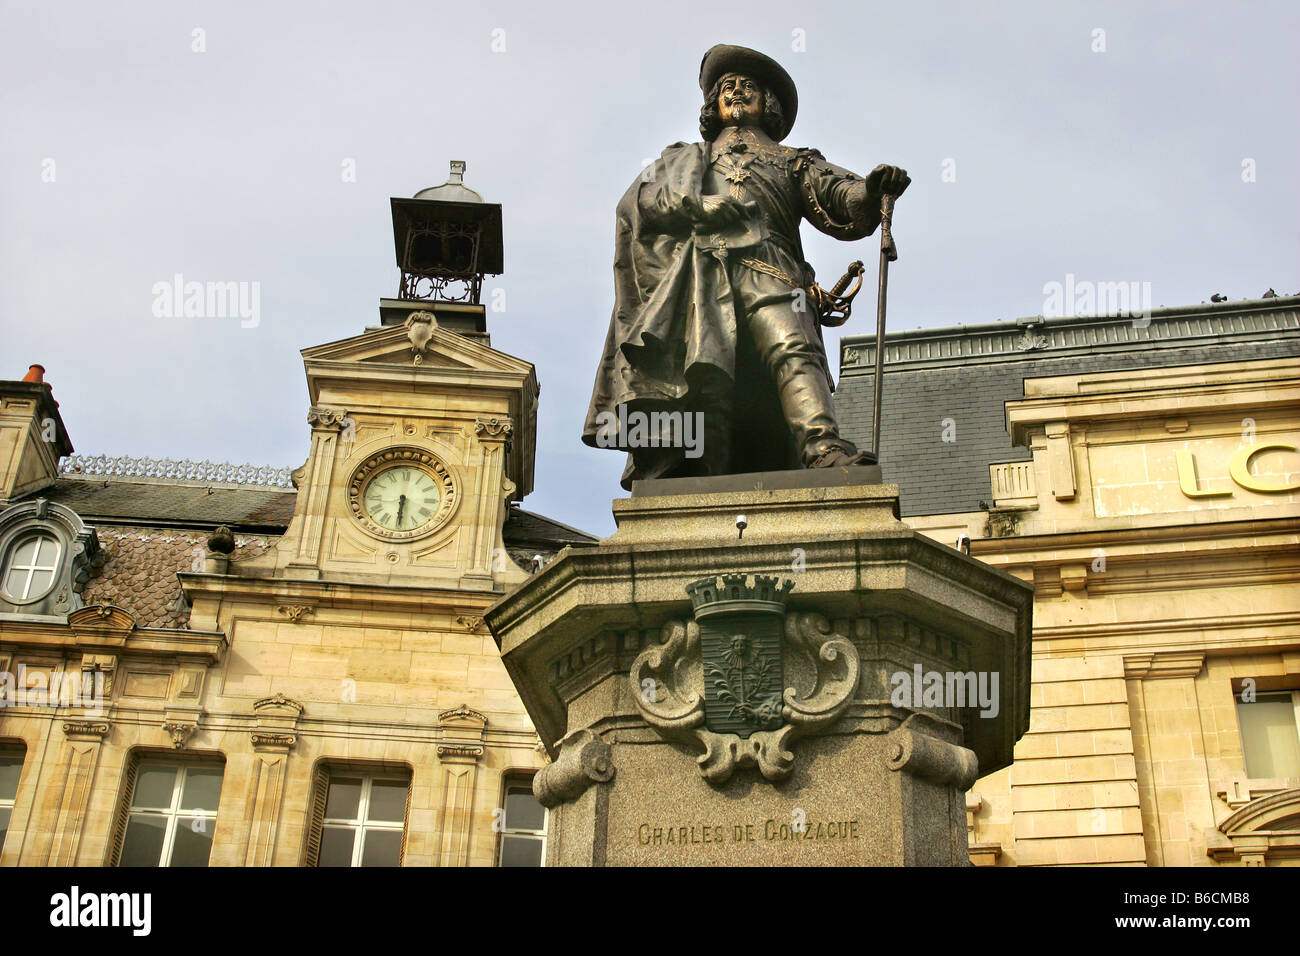 Statue of Charles De Conzacue in the town of Charleville-Mezieres in the Ardennes, France. - Stock Image